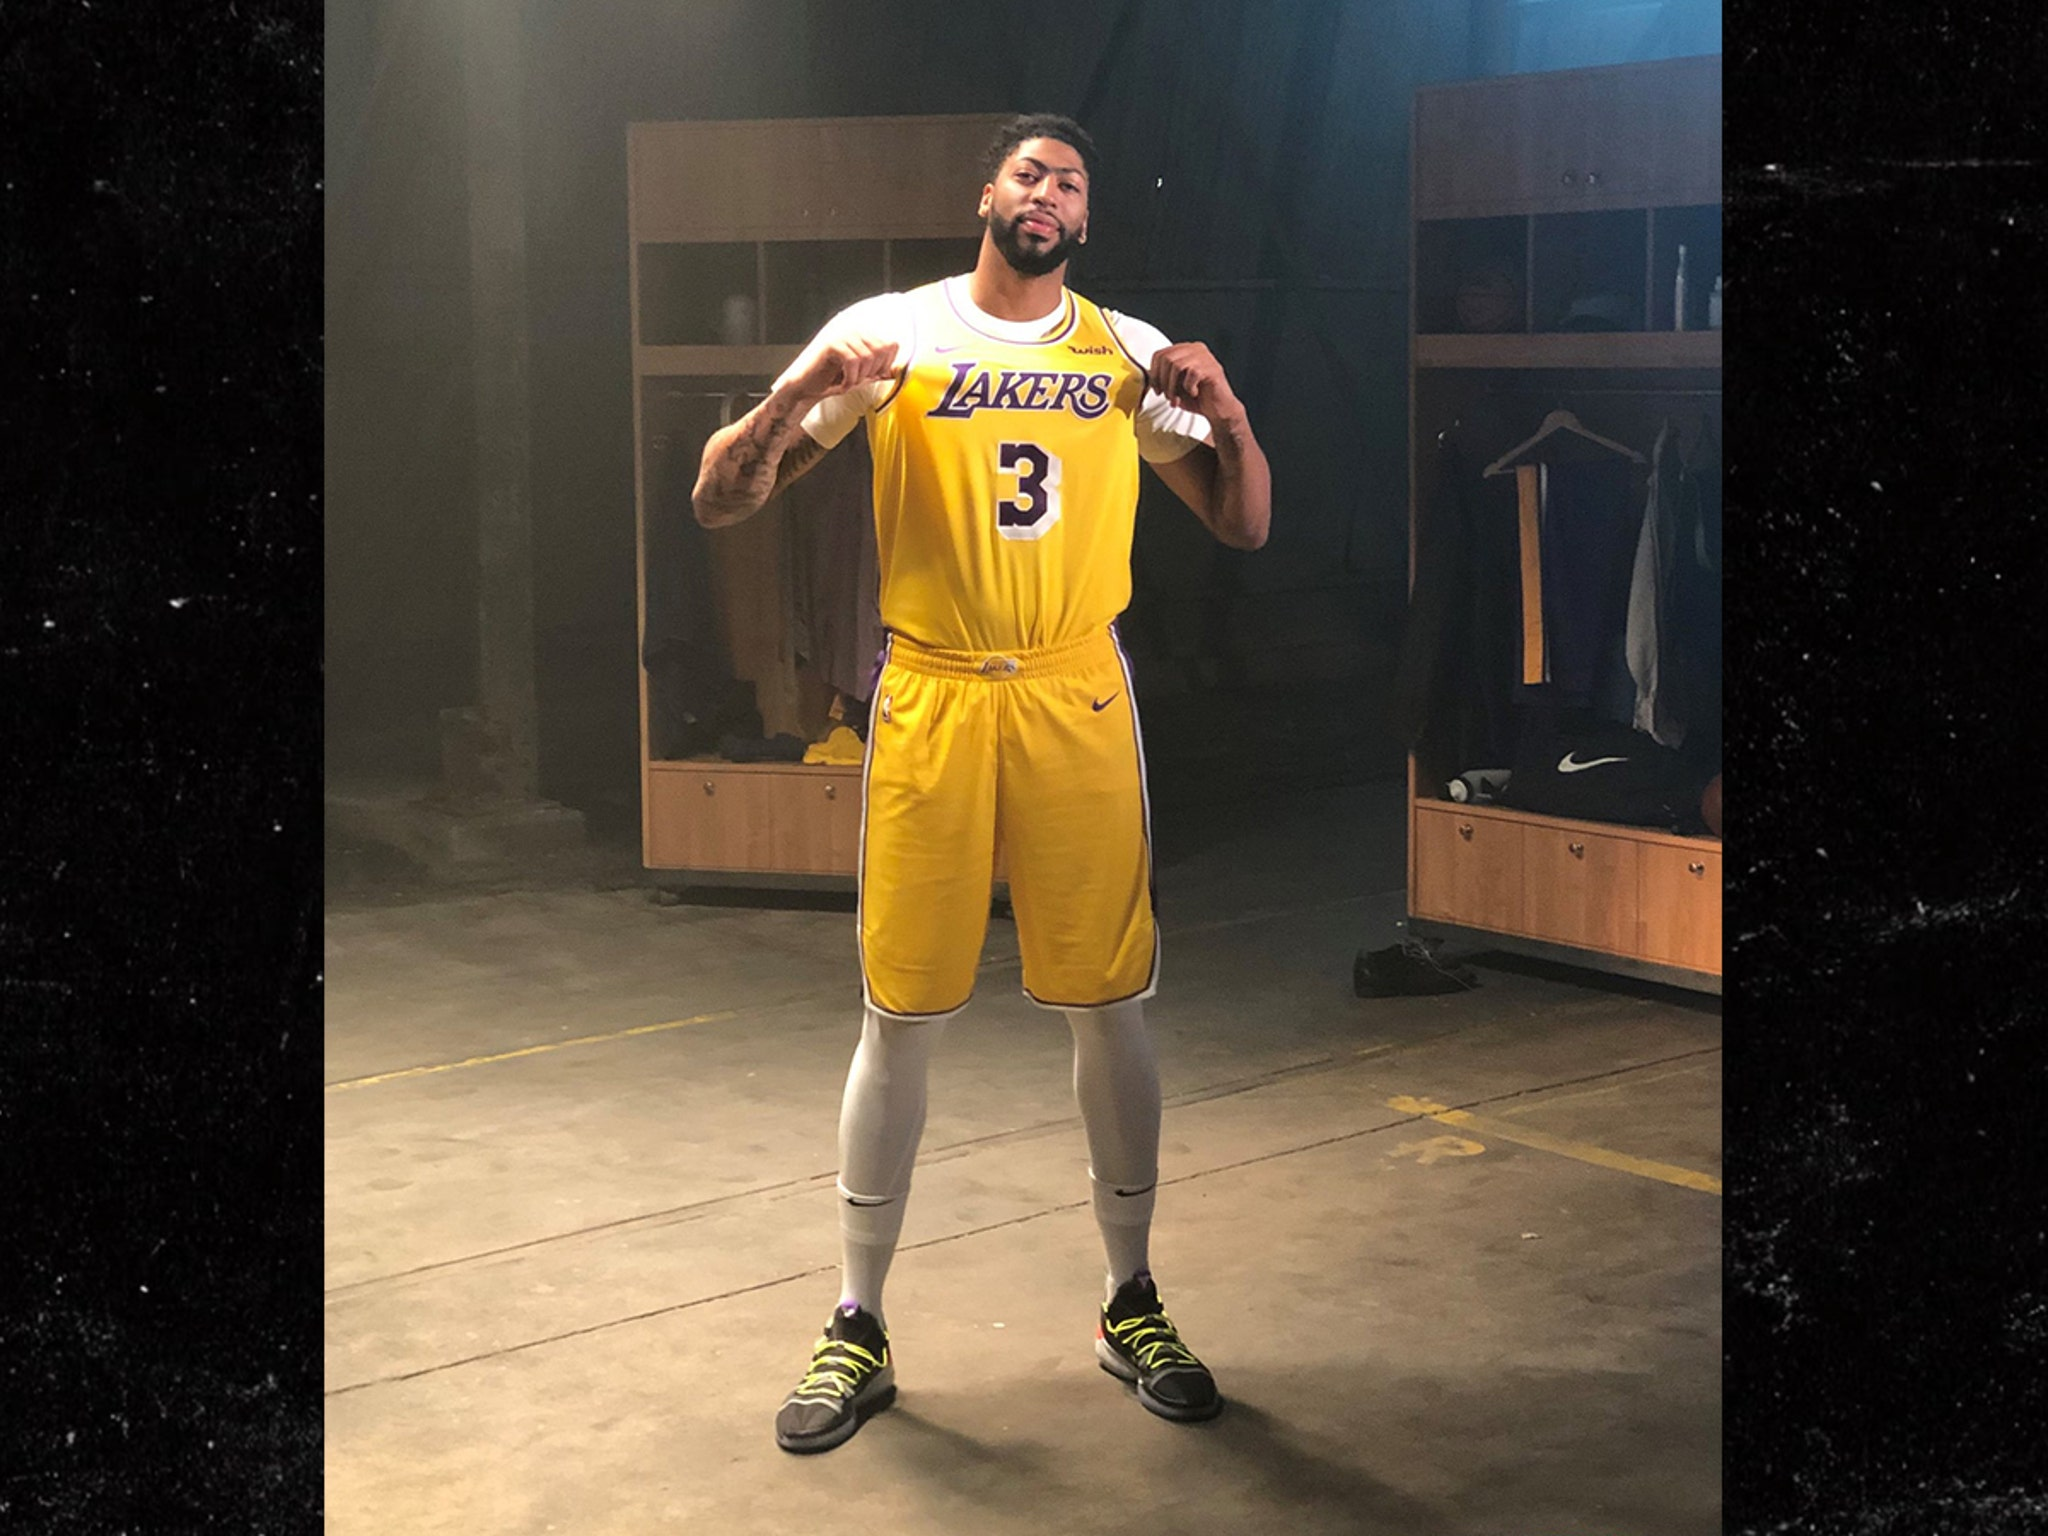 Anthony Davis Rocks Full Lakers Uni For First Time, Just Not #23 Yet